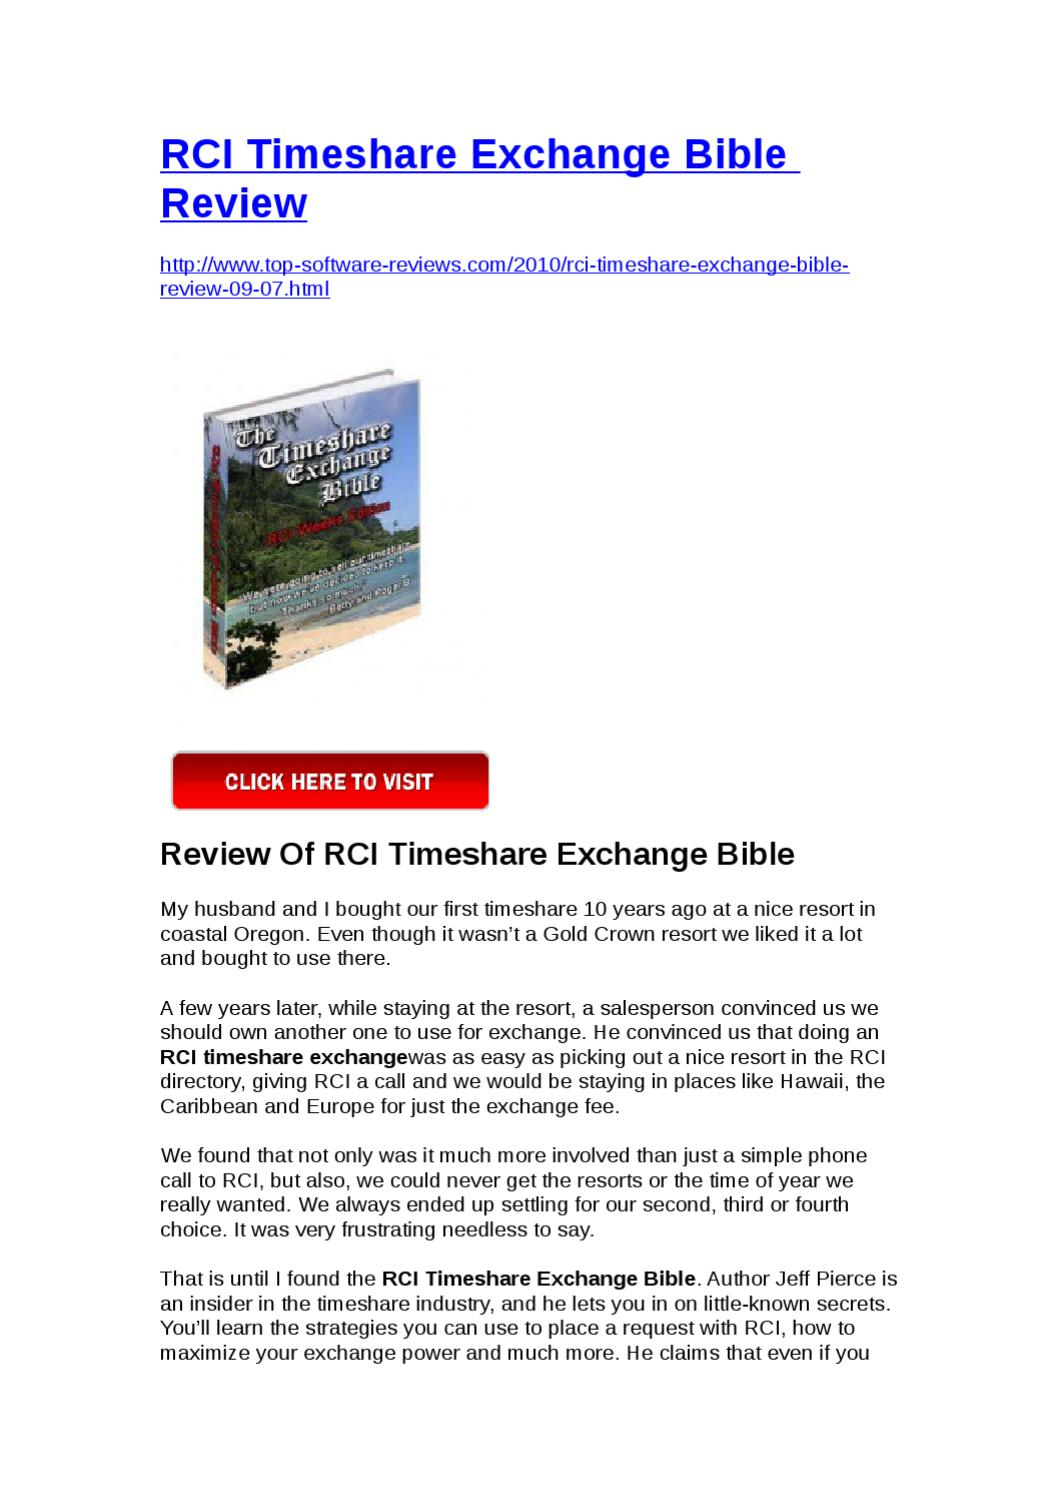 RCI Timeshare Exchange Bible Review by Yongqiang Xie  Issuu